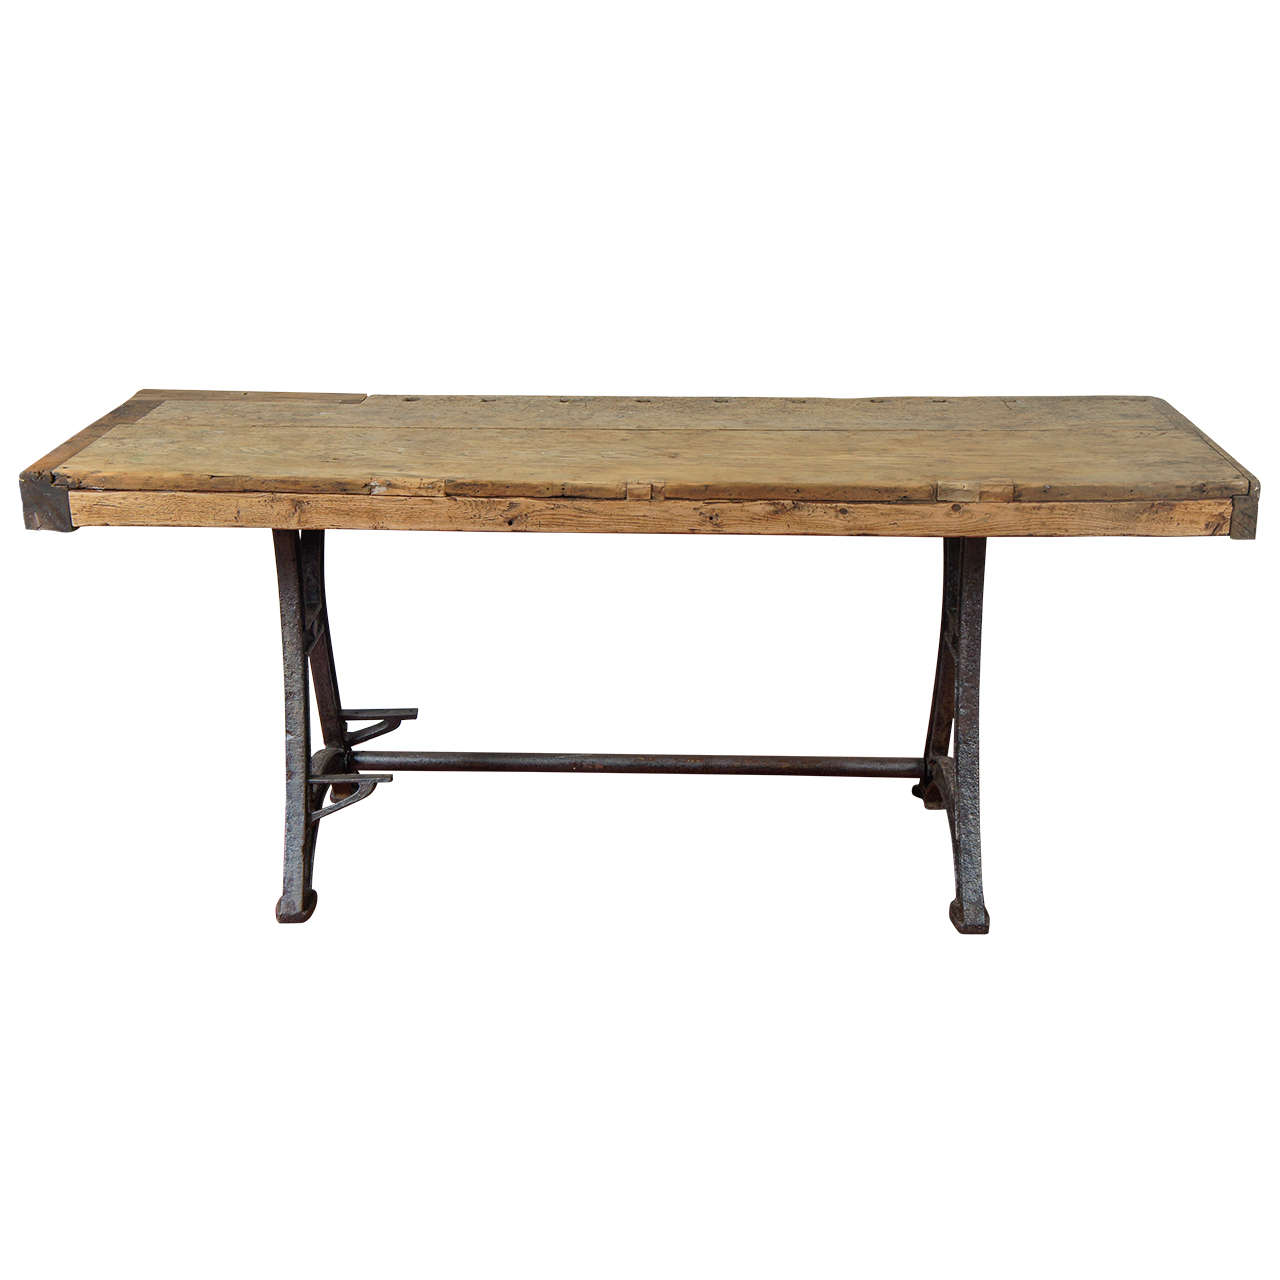 Industrial steel workbench kitchen island table at 1stdibs - Steel kitchen tables ...